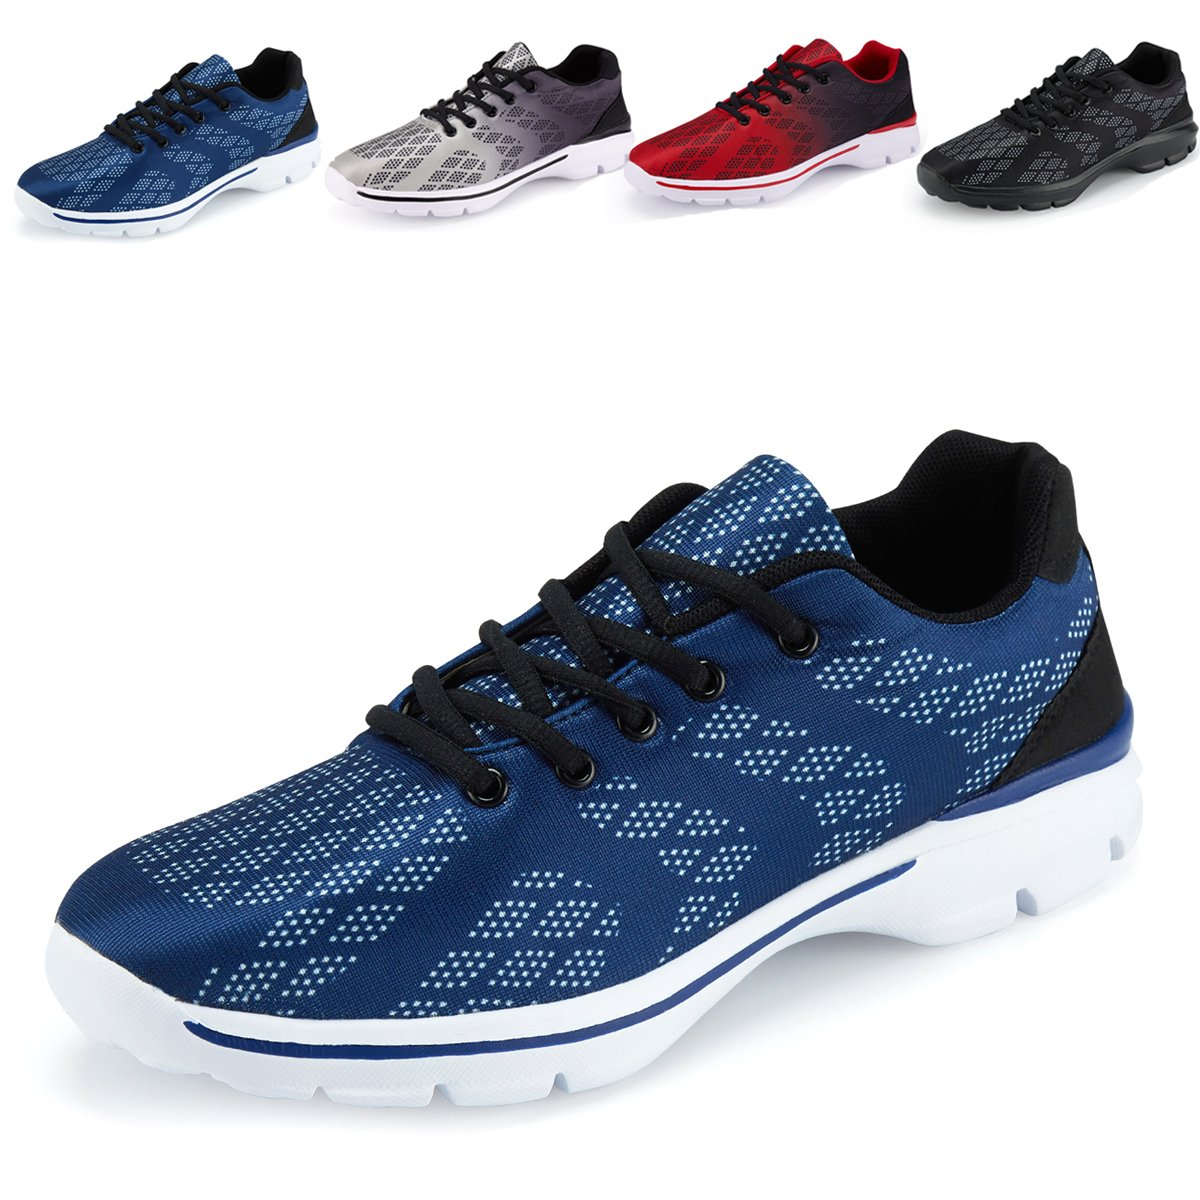 CaitinMen's Lightweight Breathable Running Tennis Sneakers Casual Walking Shoes, 1#blue, 7 M US